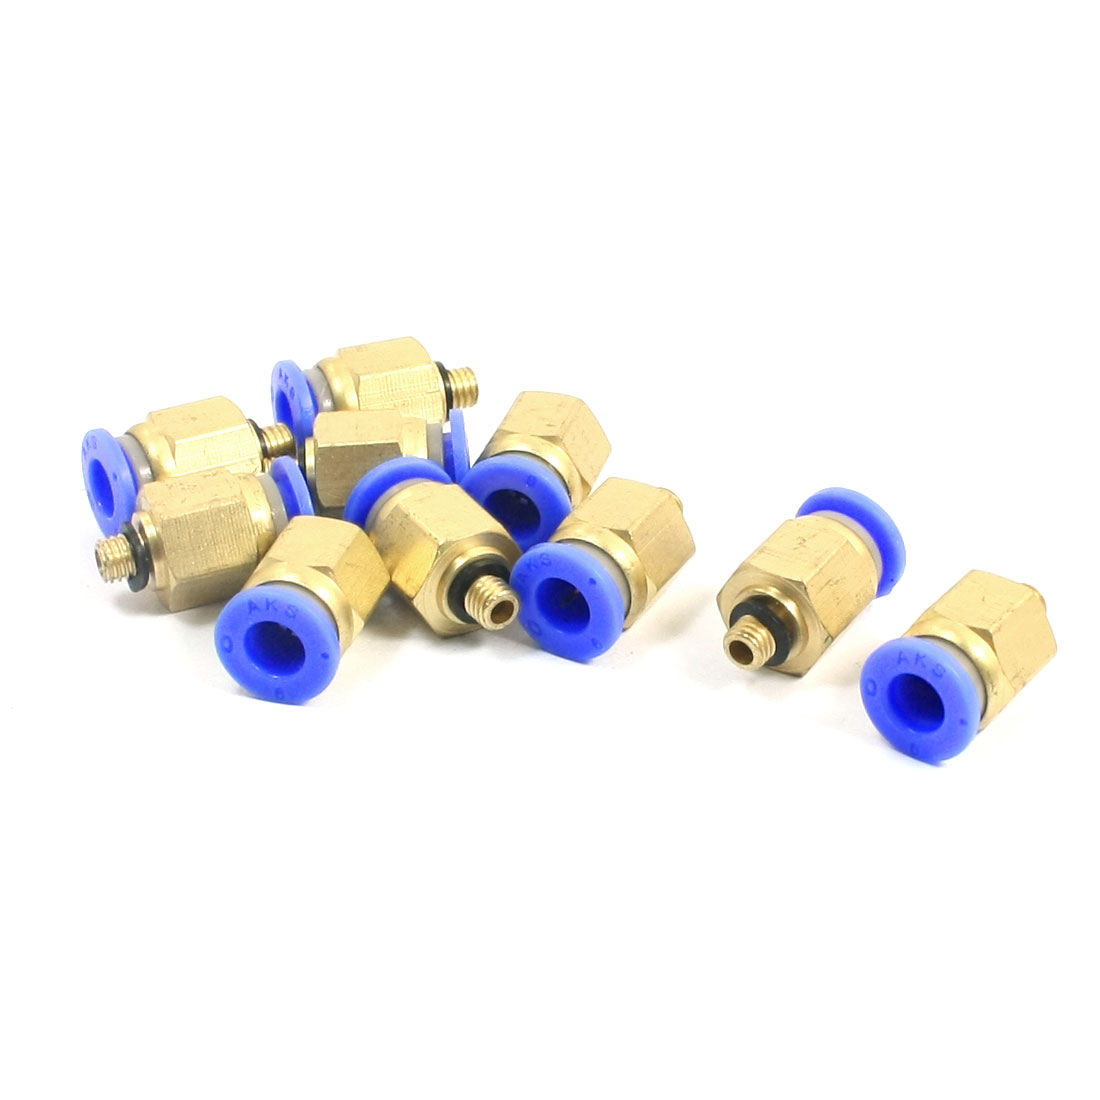 10 PCS M5 Thread 6mm Push in Tube Dia Pneumatic Quick Release Fitting Coupler Joint Connector Adapter